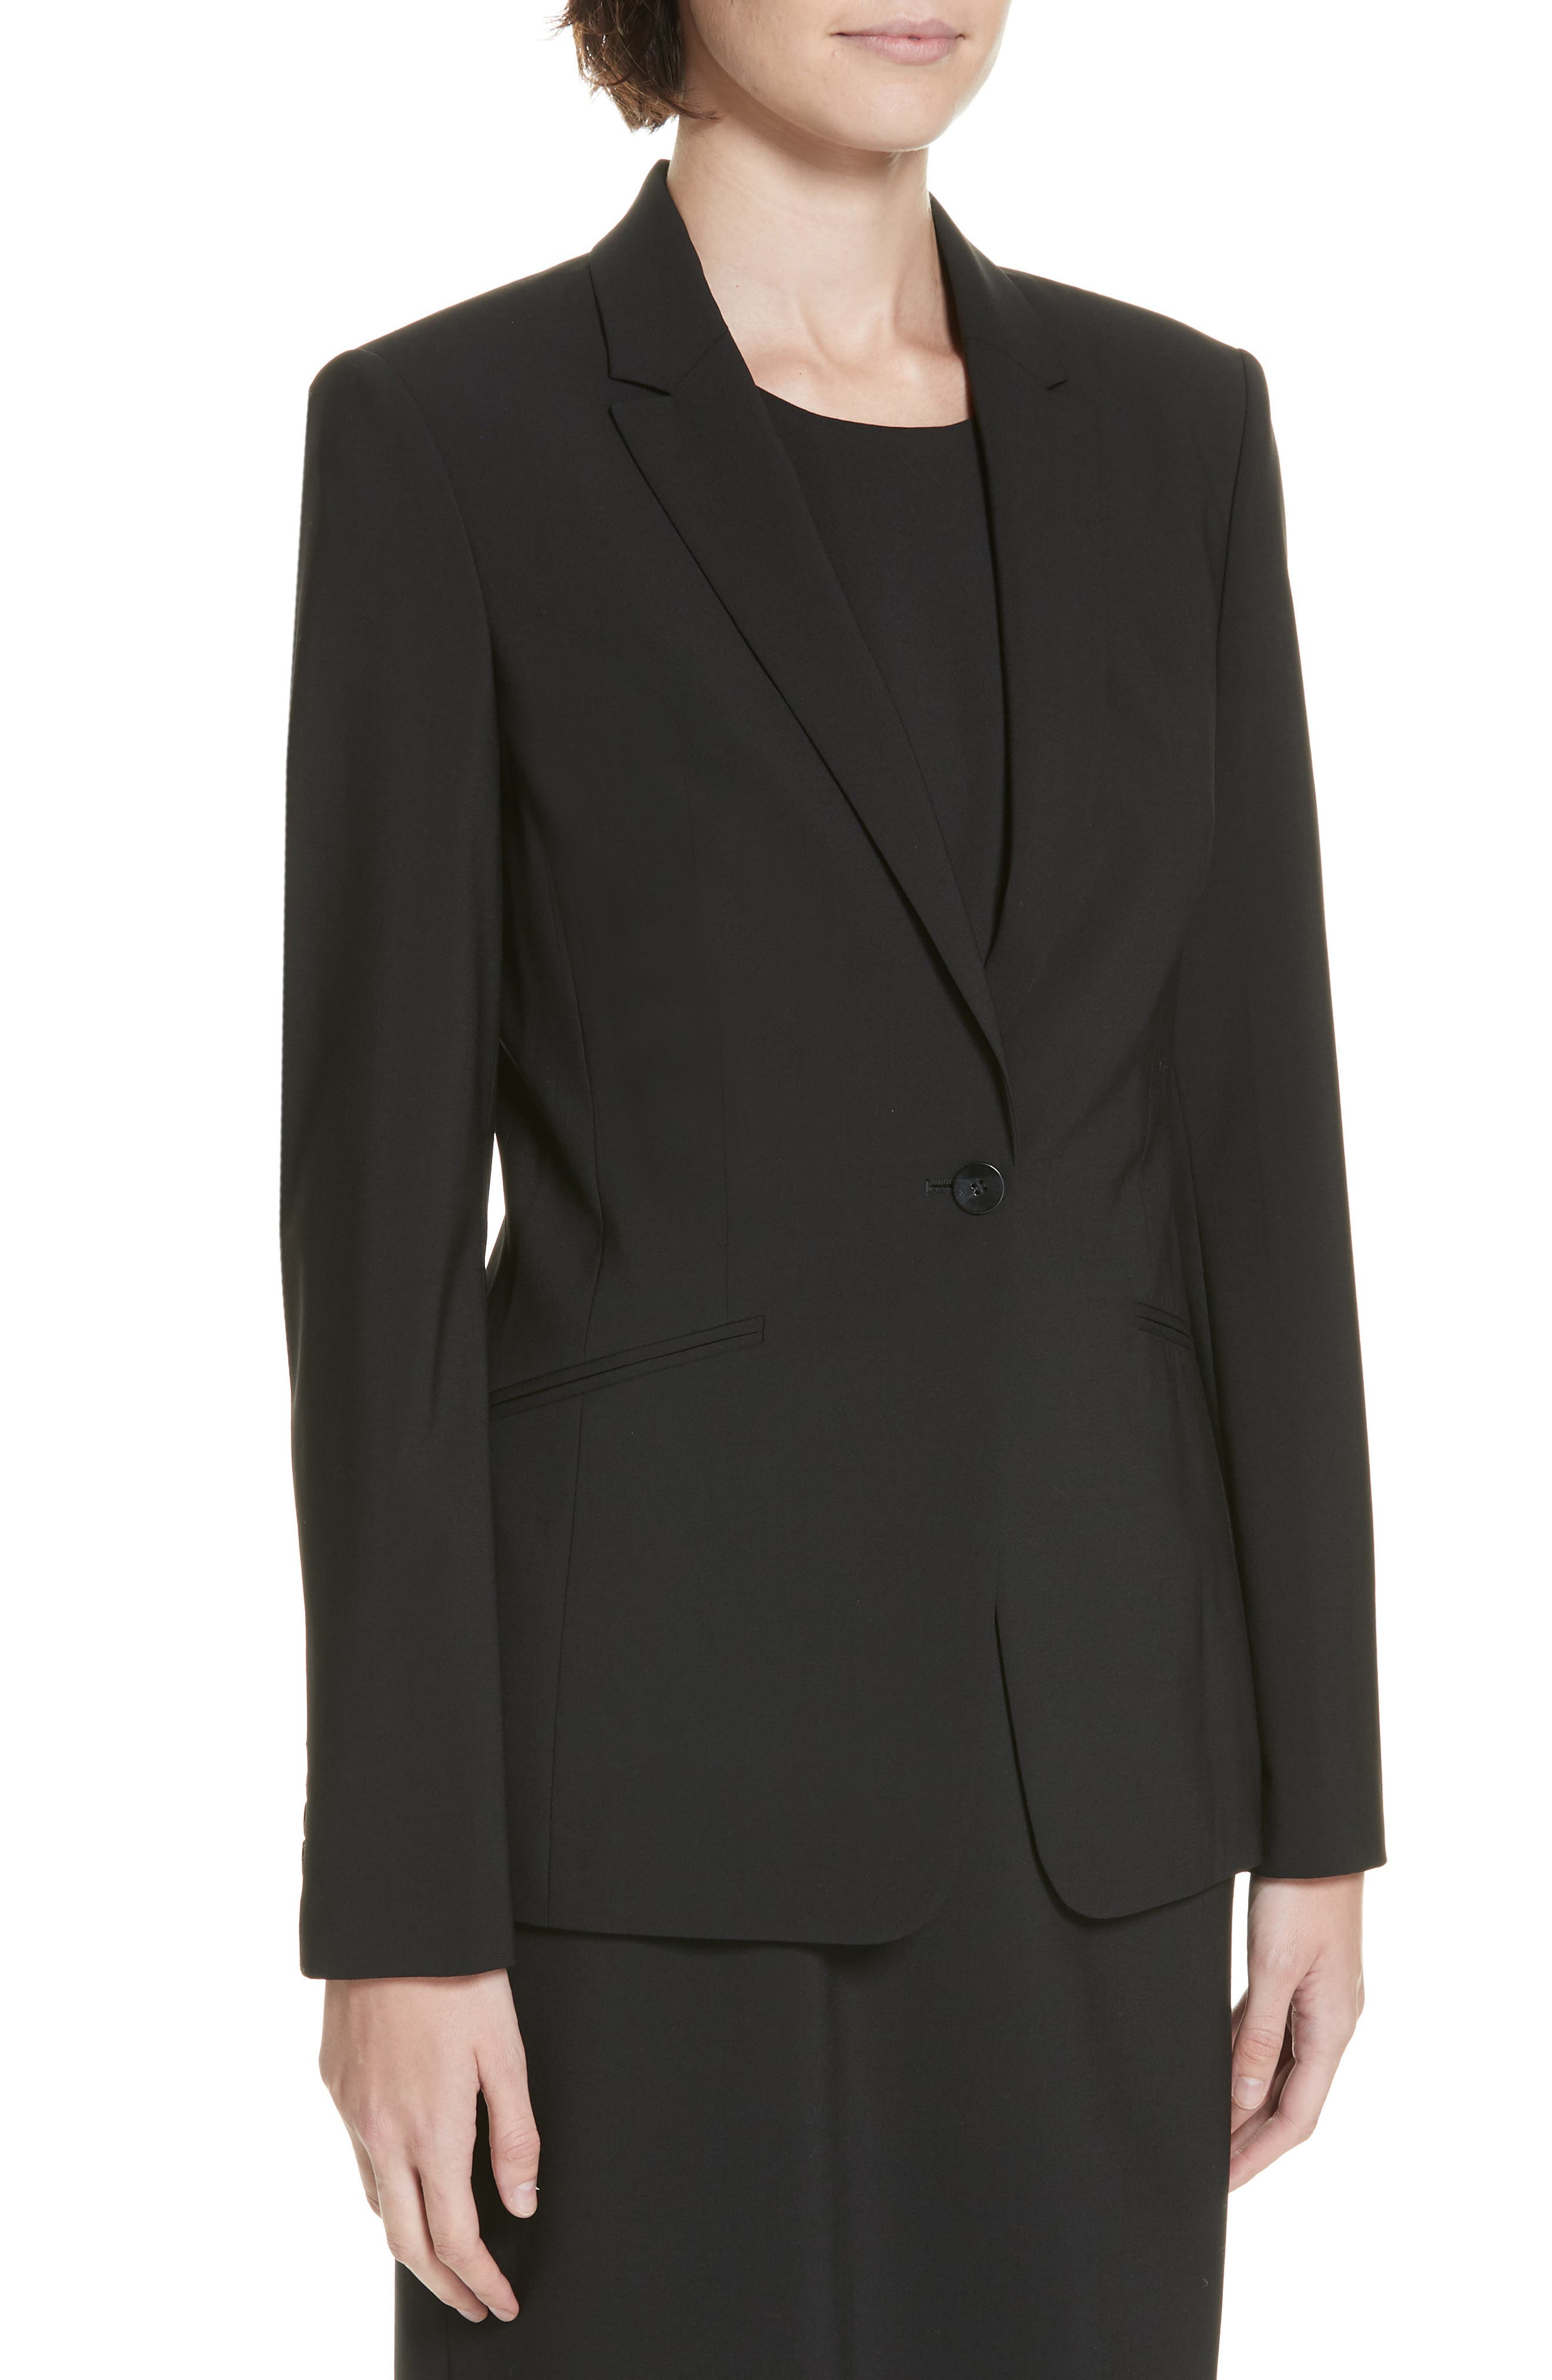 BOSS, Jabina Tropical Stretch Wool Jacket, Alternate thumbnail 5, color, BLACK